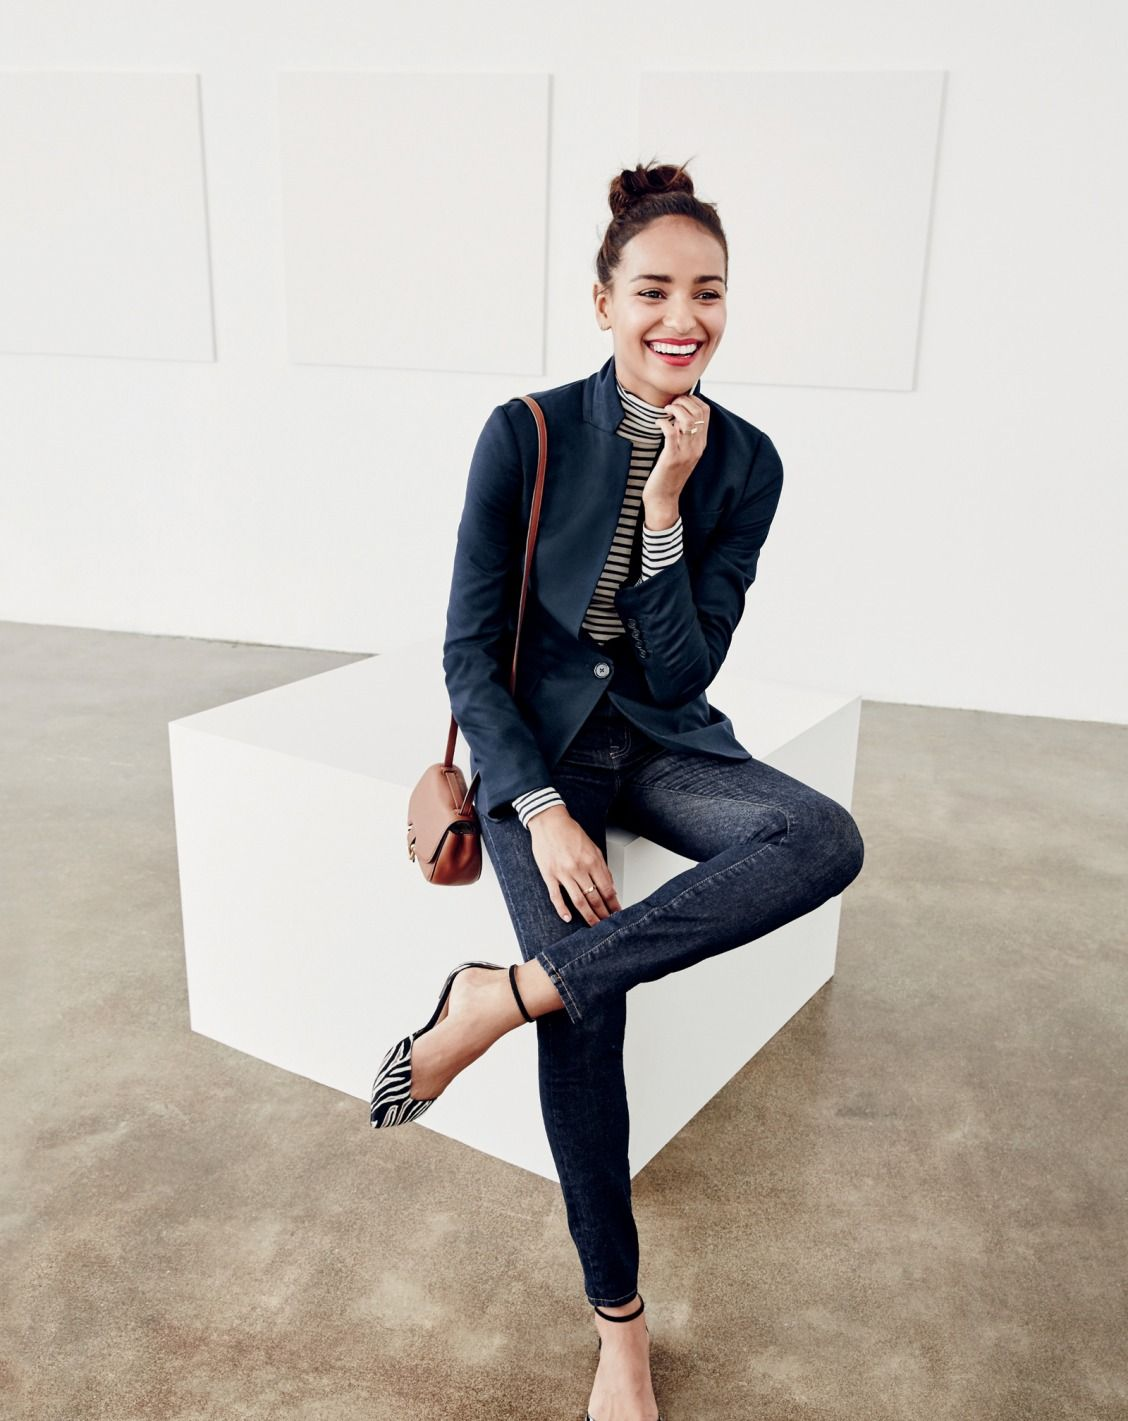 eefef6077e J.Crew women's Regent blazer in navy, tissue turtleneck T-shirt in stripe,  lookout high-rise jean in Resin wash, mini Rider bag and Sadie ankle-strap  flats ...